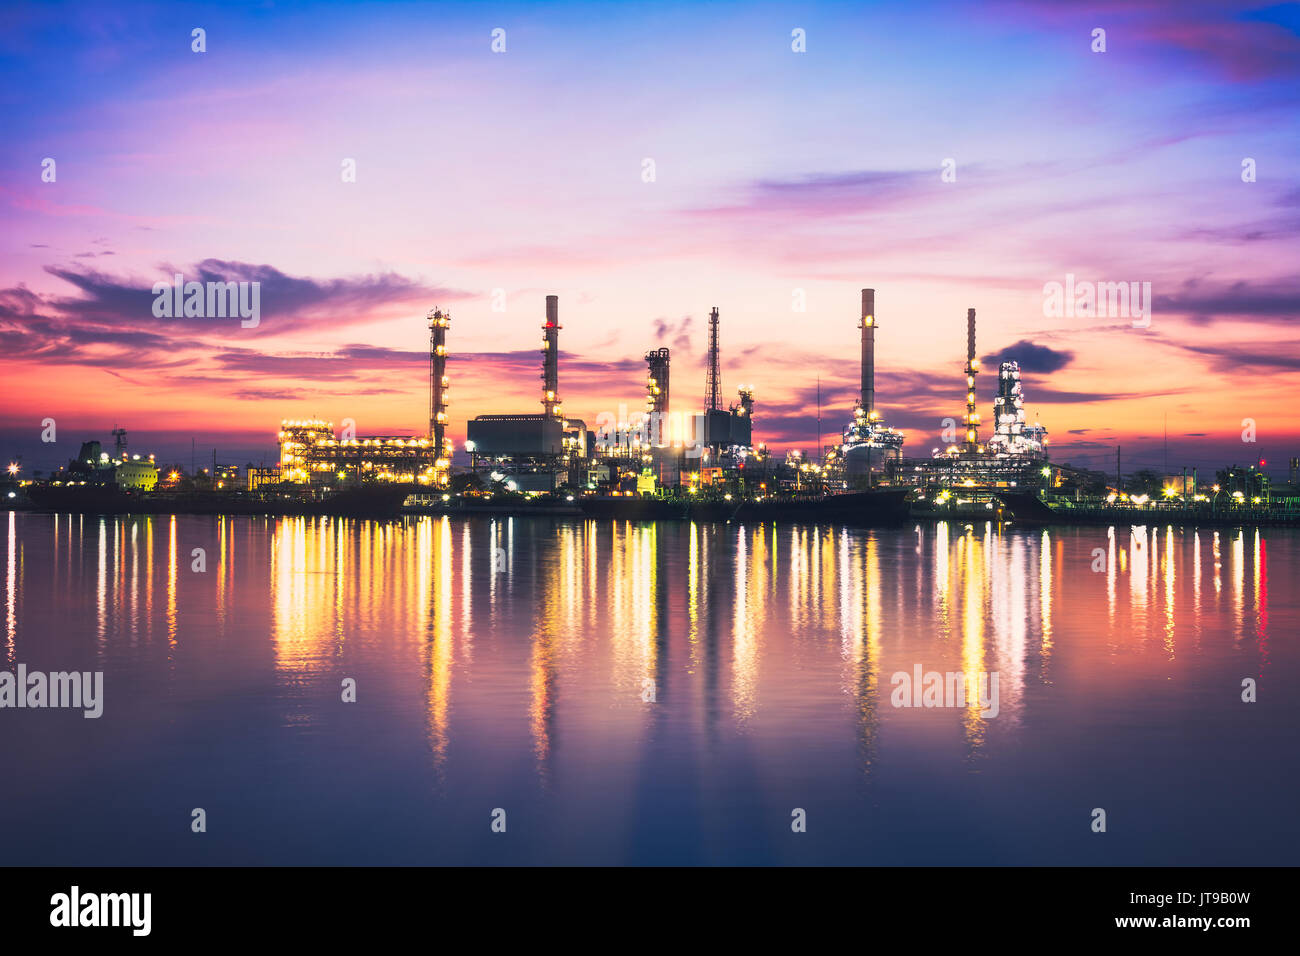 sunrise-oil-refinery-at-twilight-in-bang